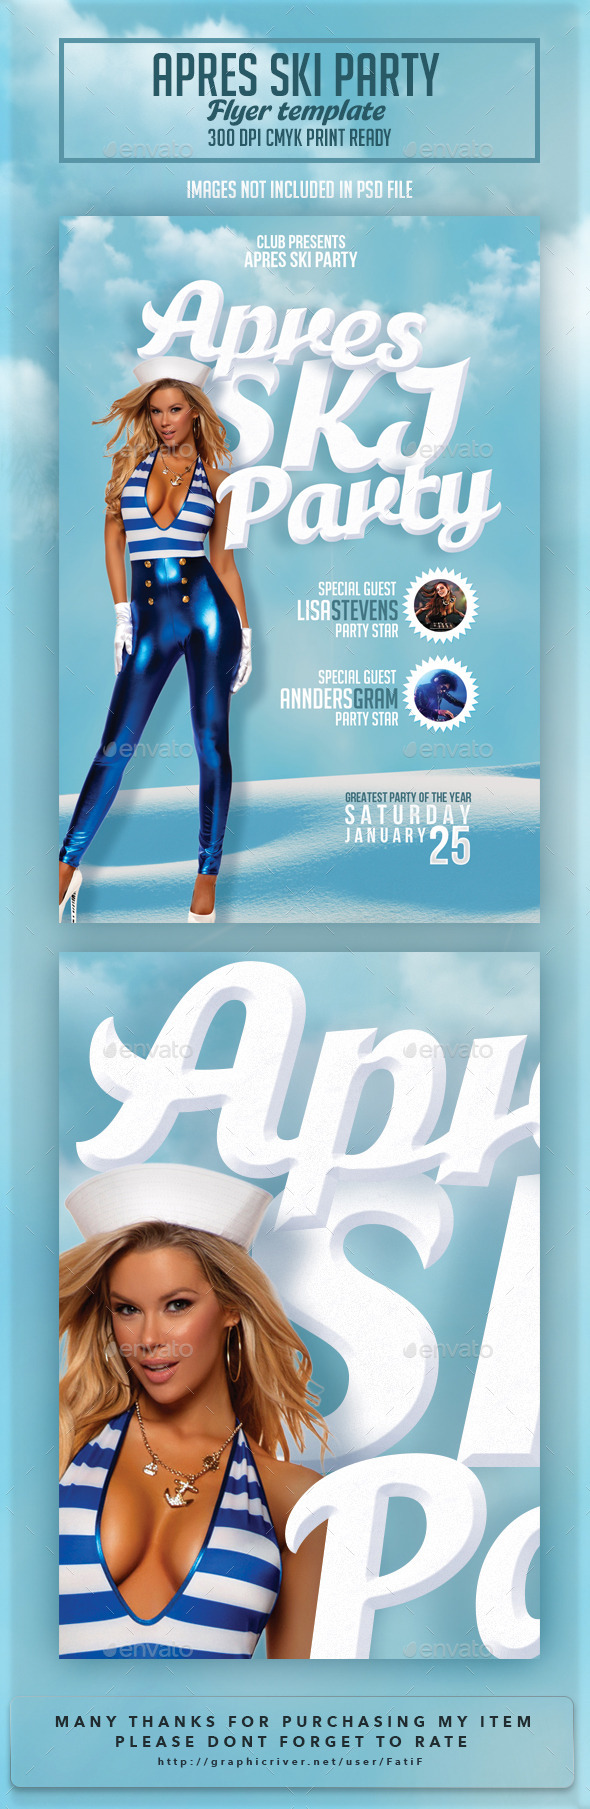 GraphicRiver Apres Ski Party Flyer Template 10032415